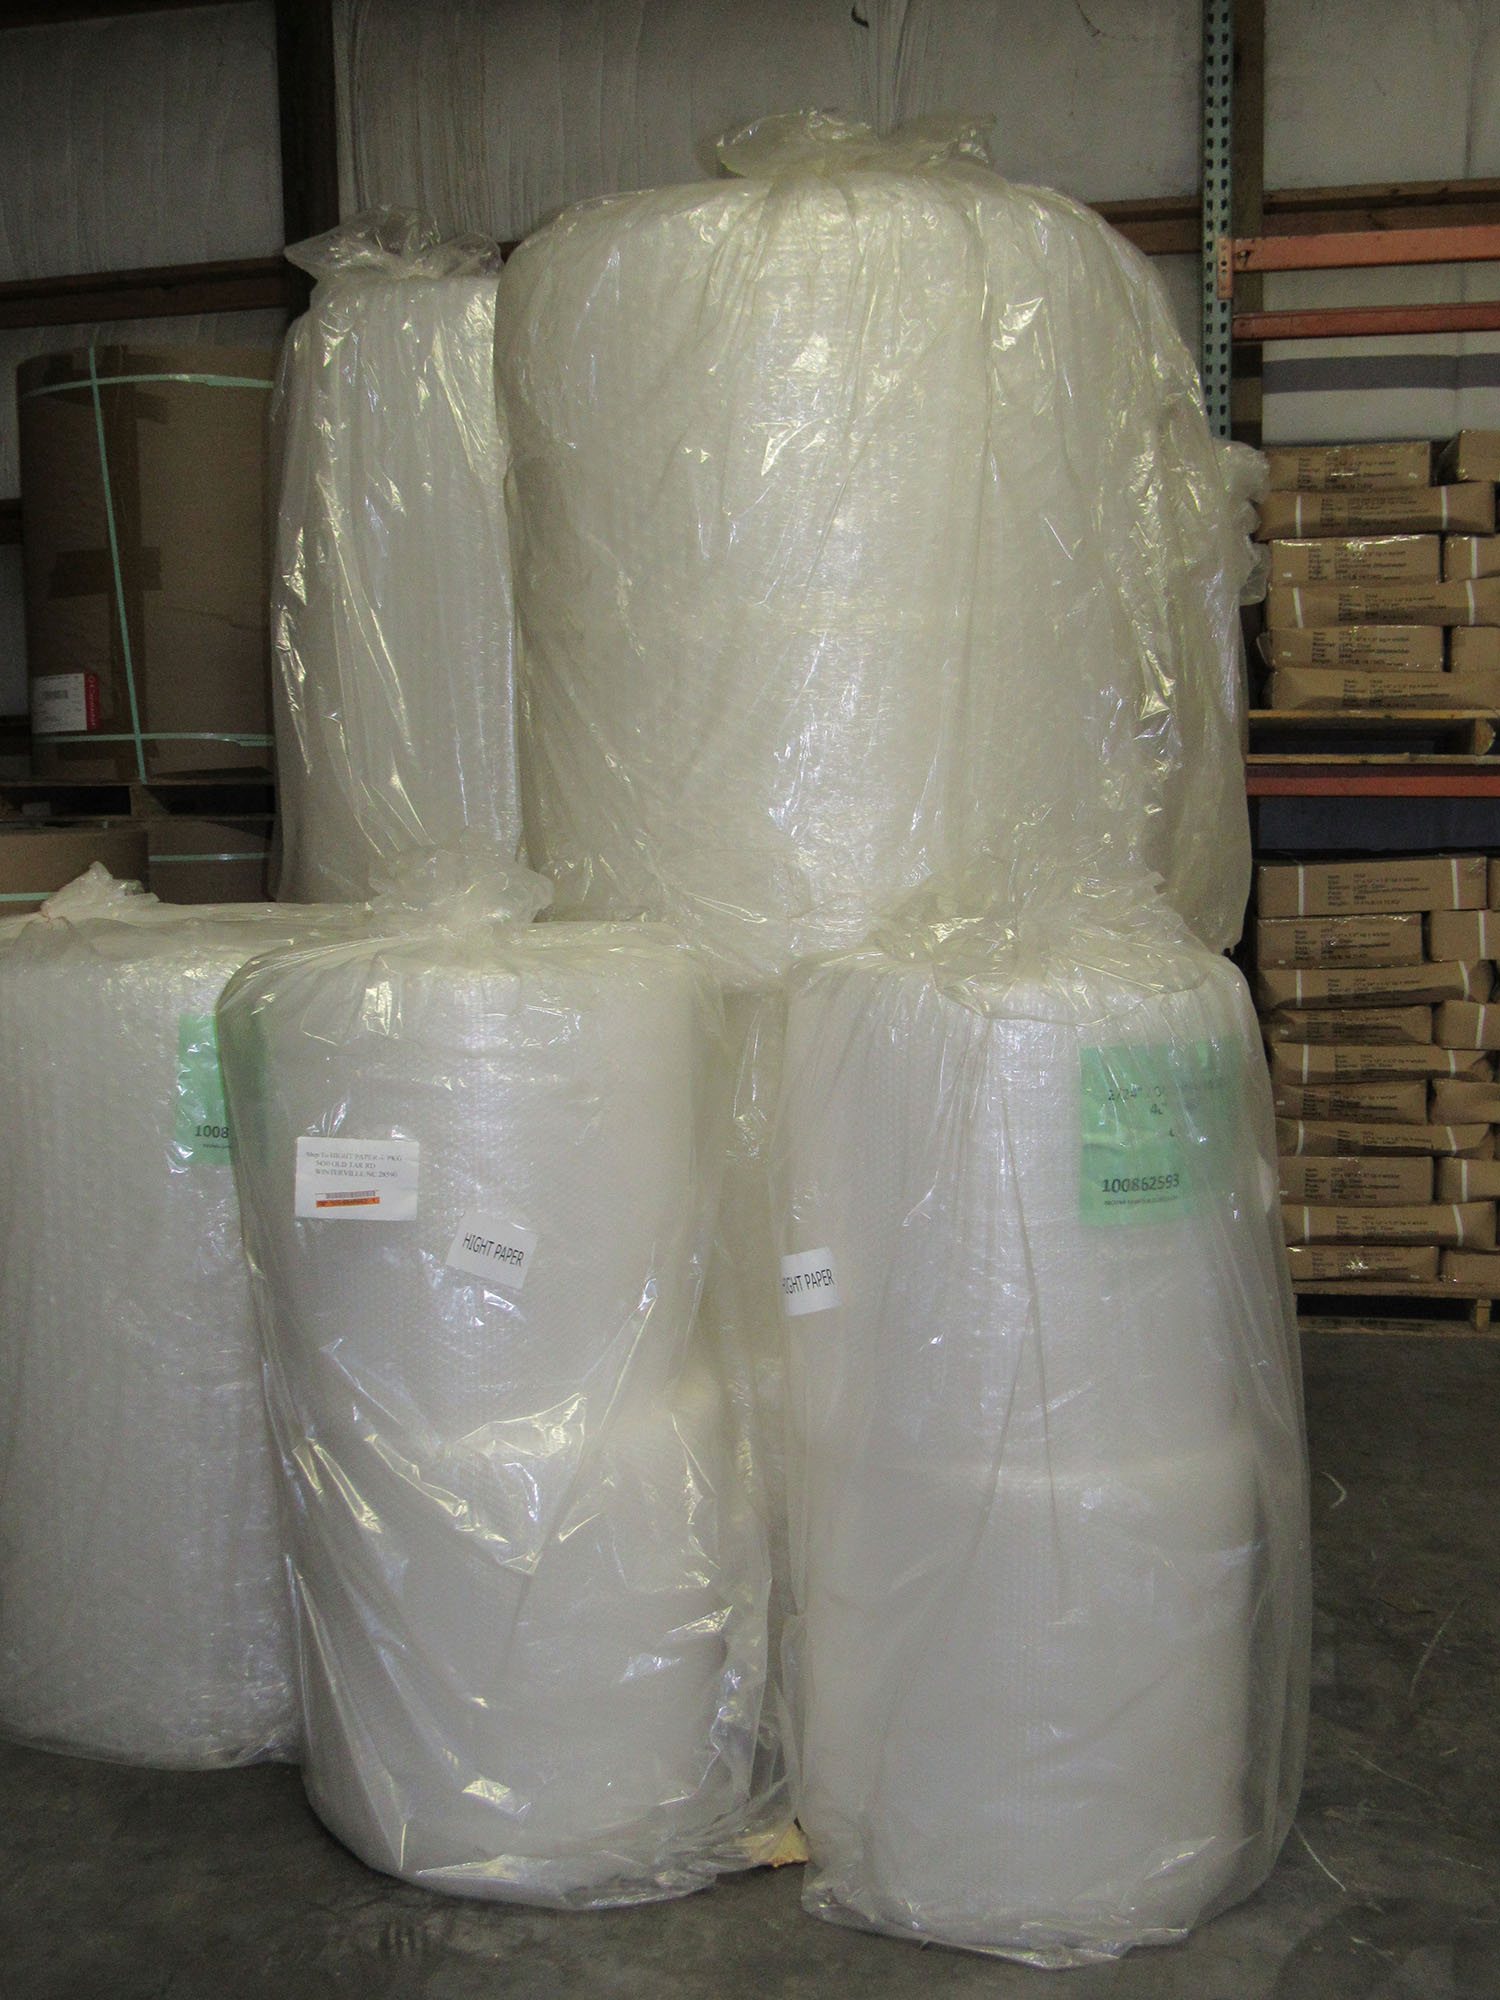 suppliers-of-industrial-size-rolls-of-bubble-wrap-IMG_2271-web.JPG